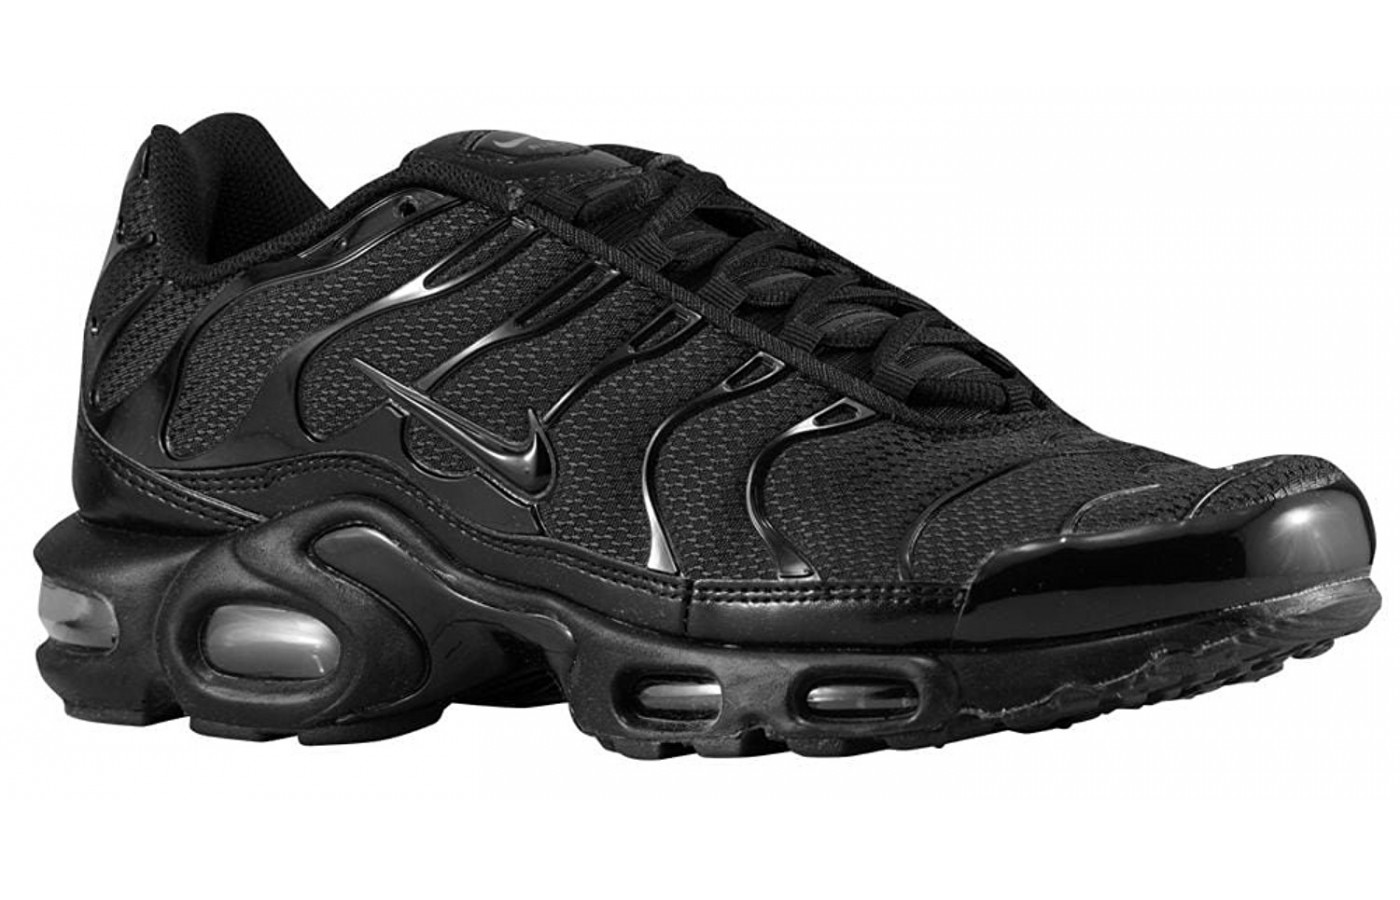 the best attitude 5ba35 b44ab A three quarter view of the Nike Air Max Plus shoe ...